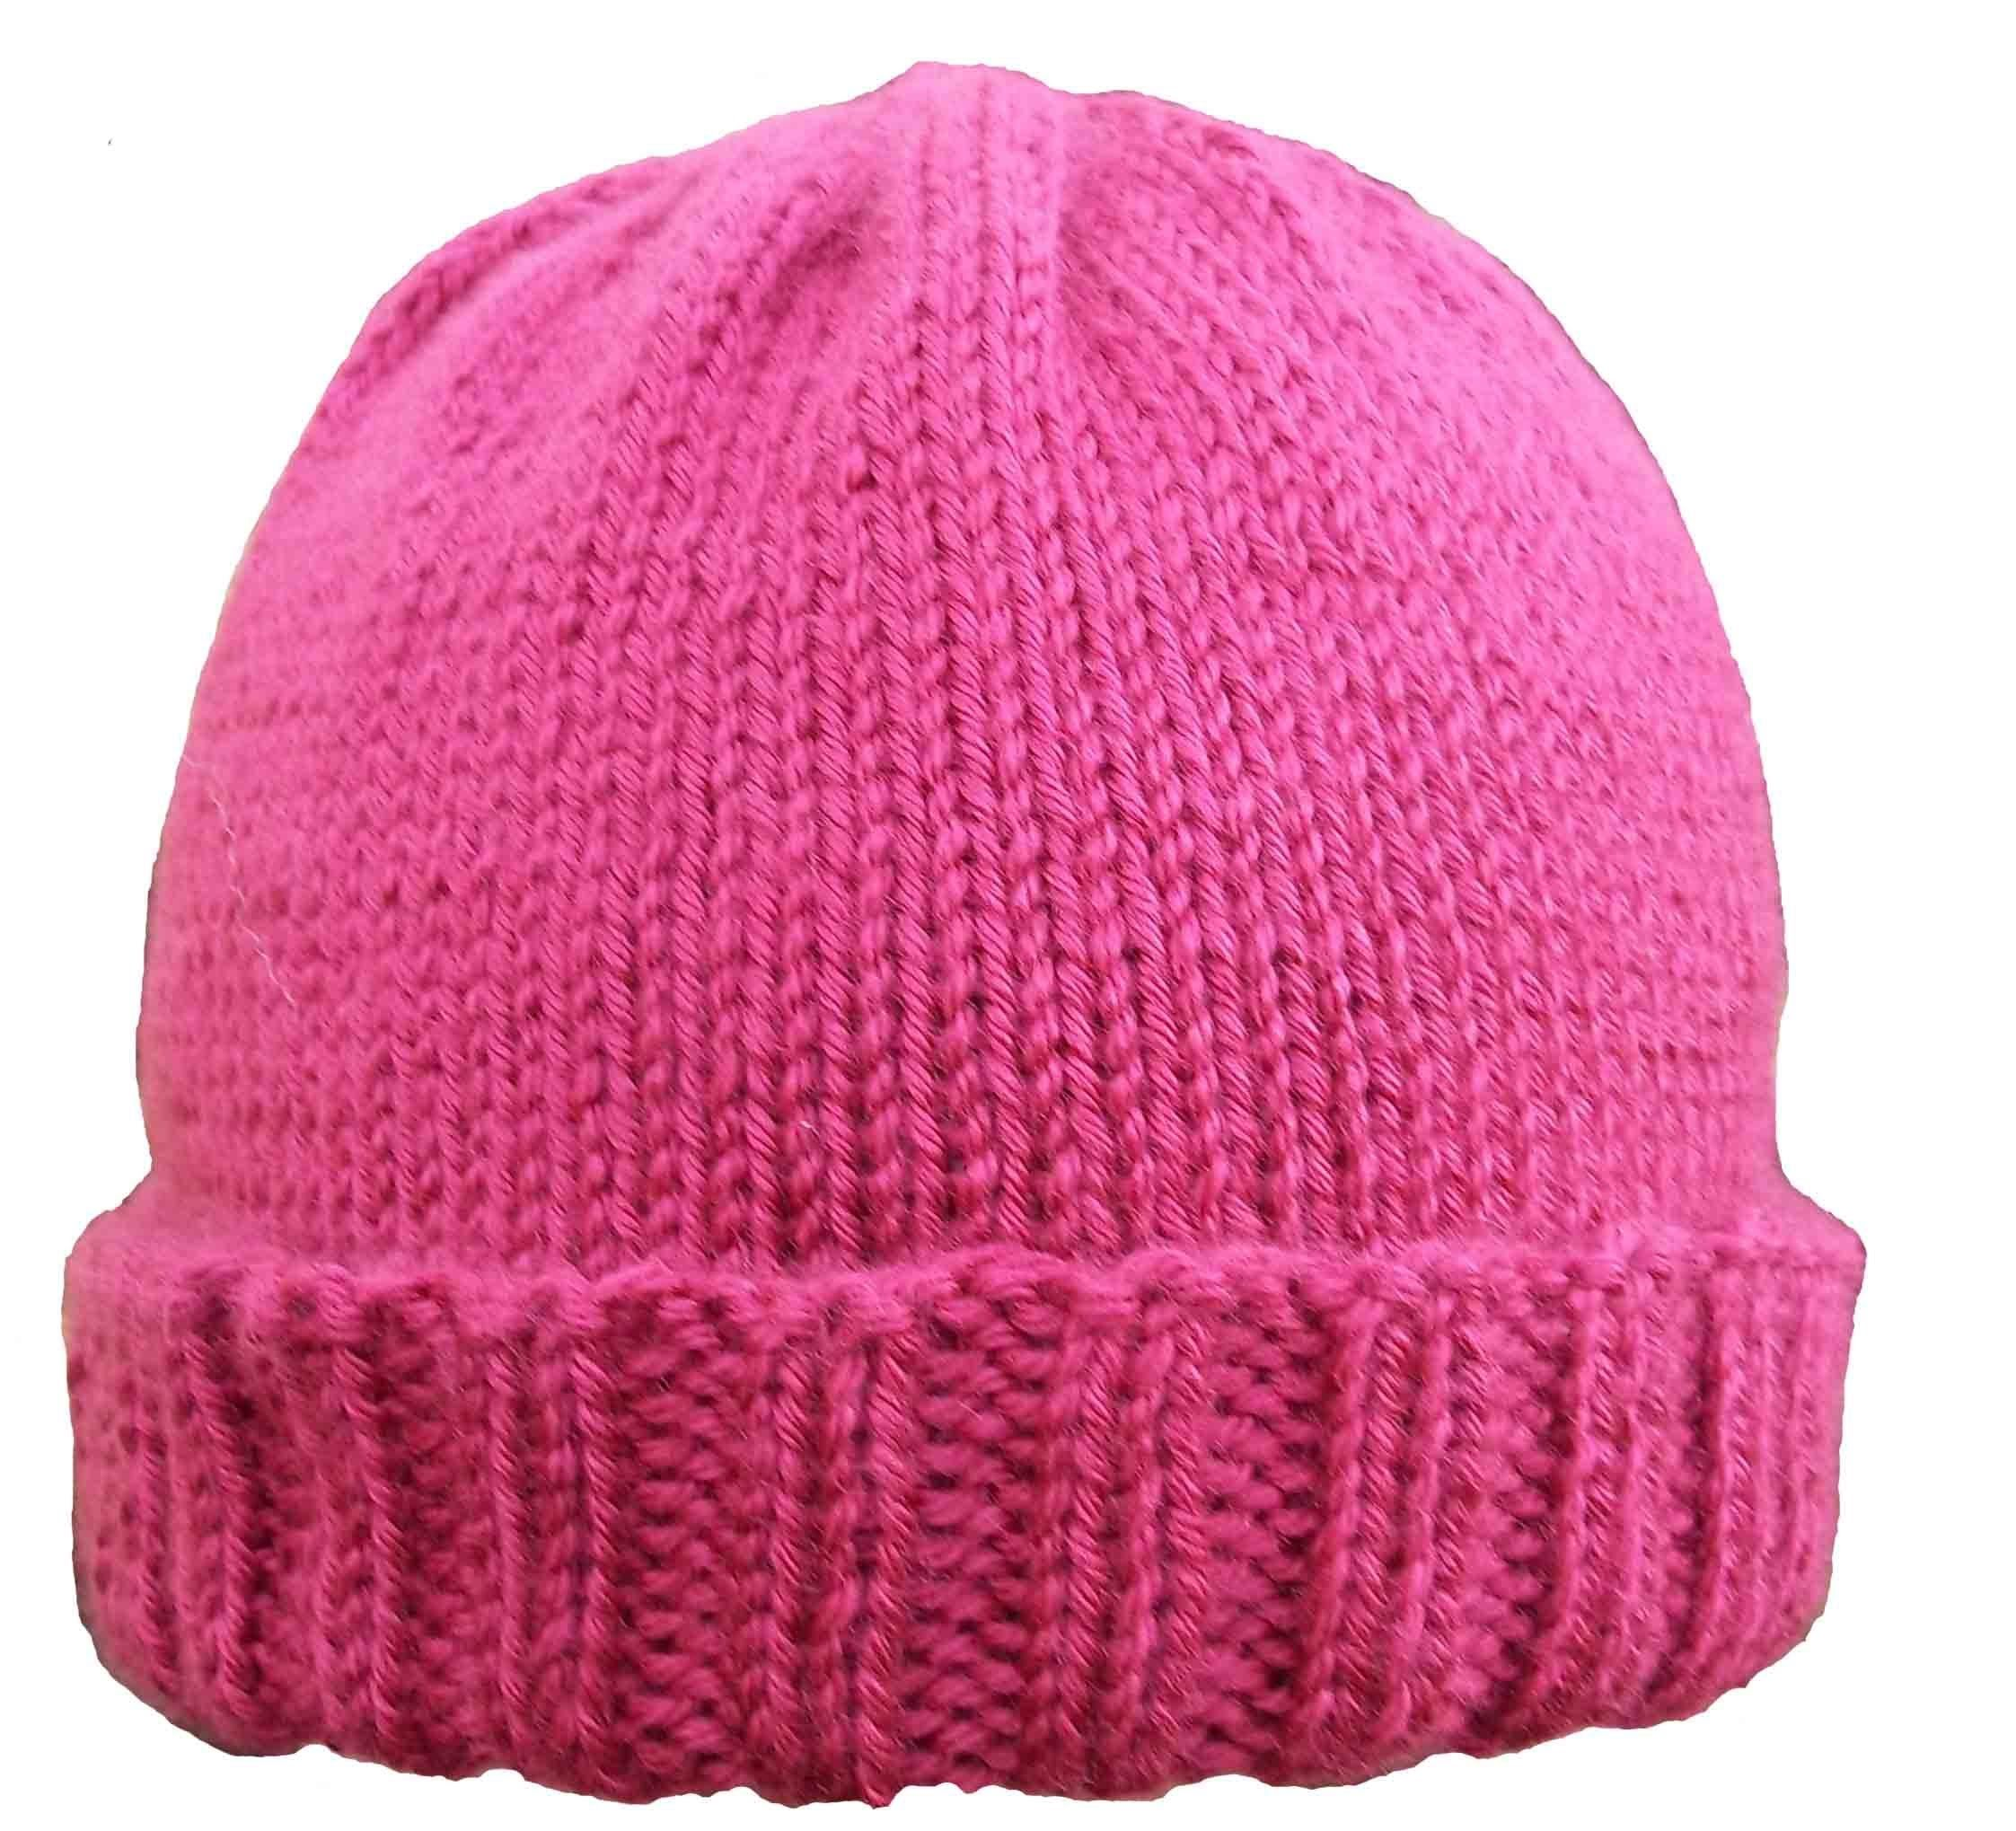 How to knit a hat on a round loom | Round loom knitting ...